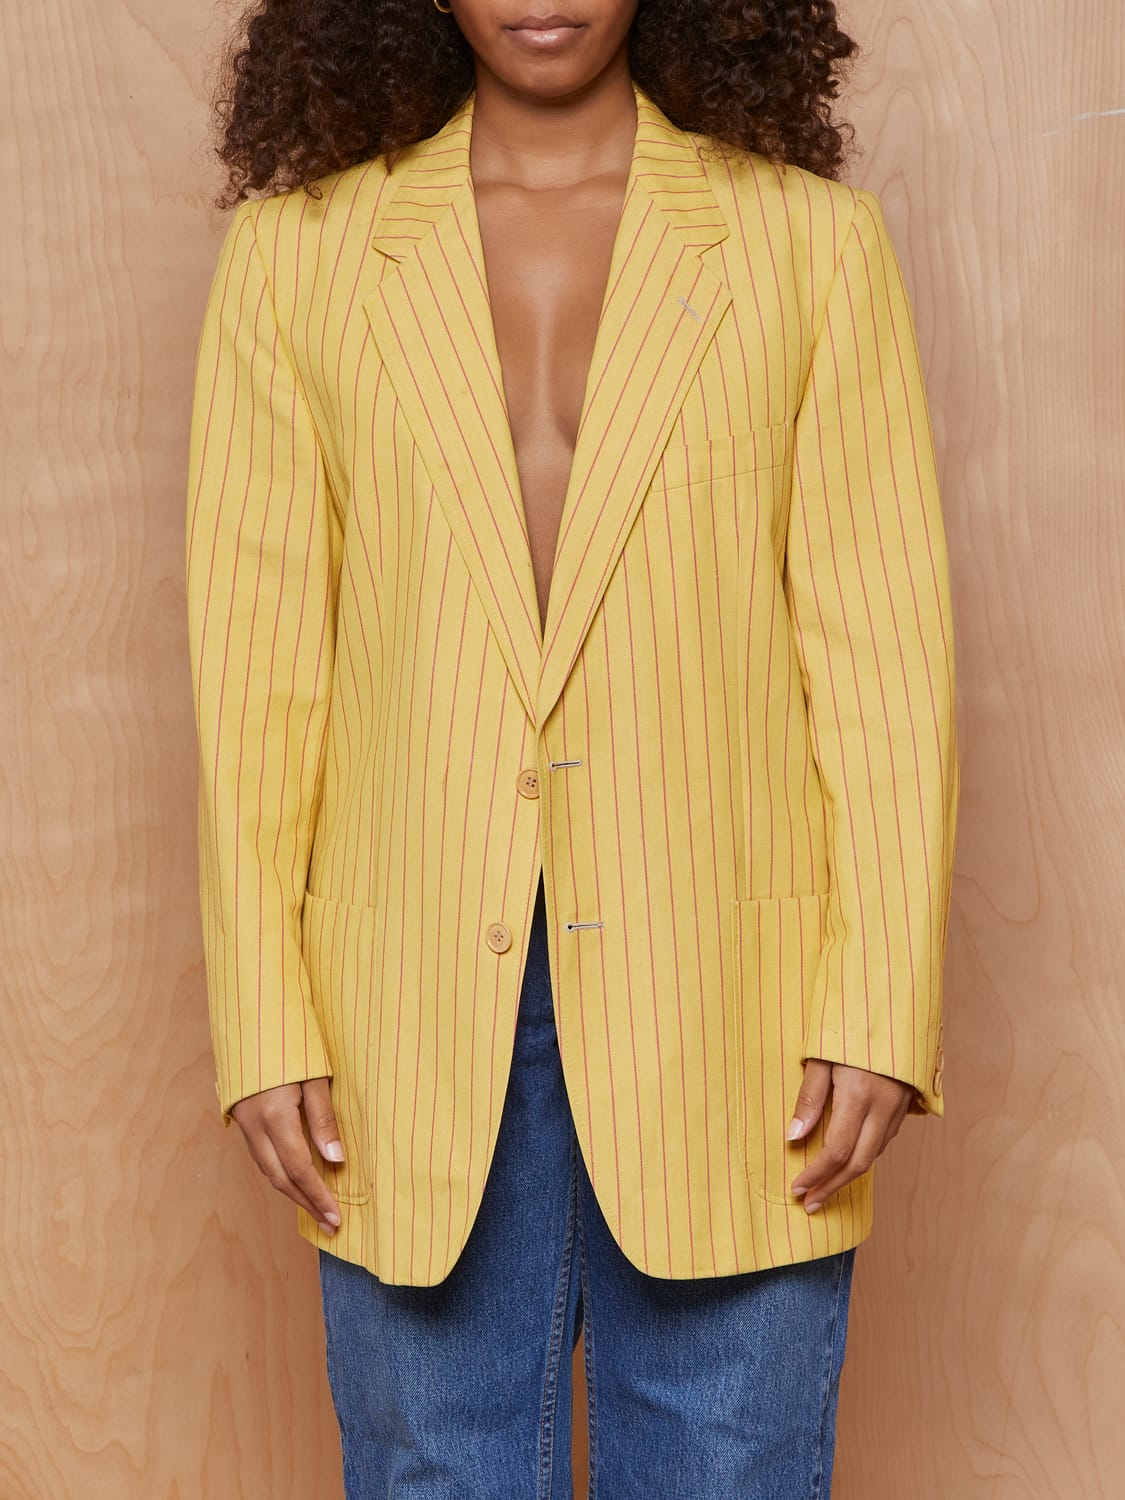 Vintage Yellow and Red Pinstripe Blazer